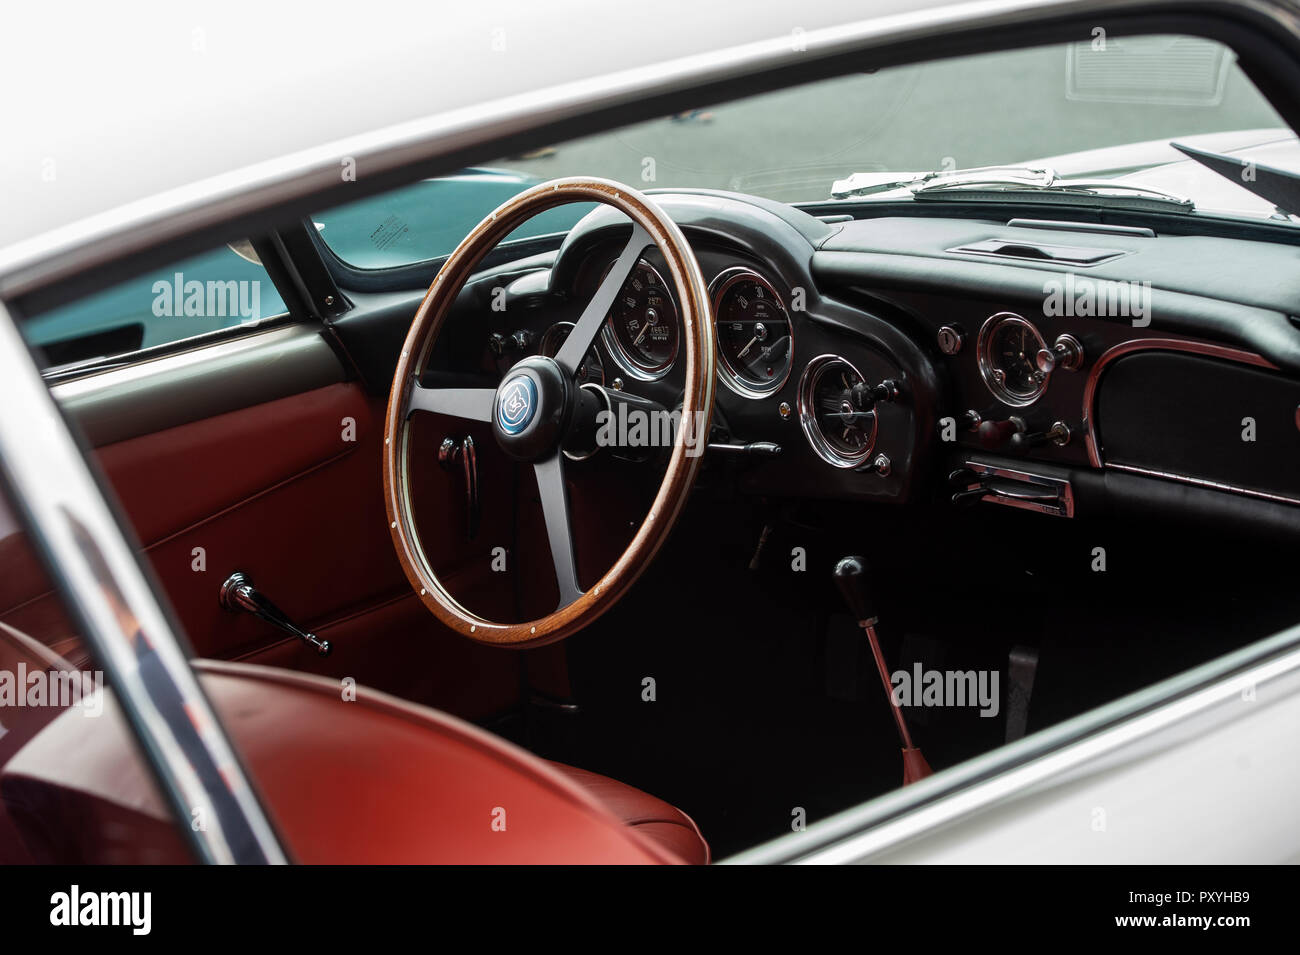 Aston Martin Interior High Resolution Stock Photography And Images Alamy